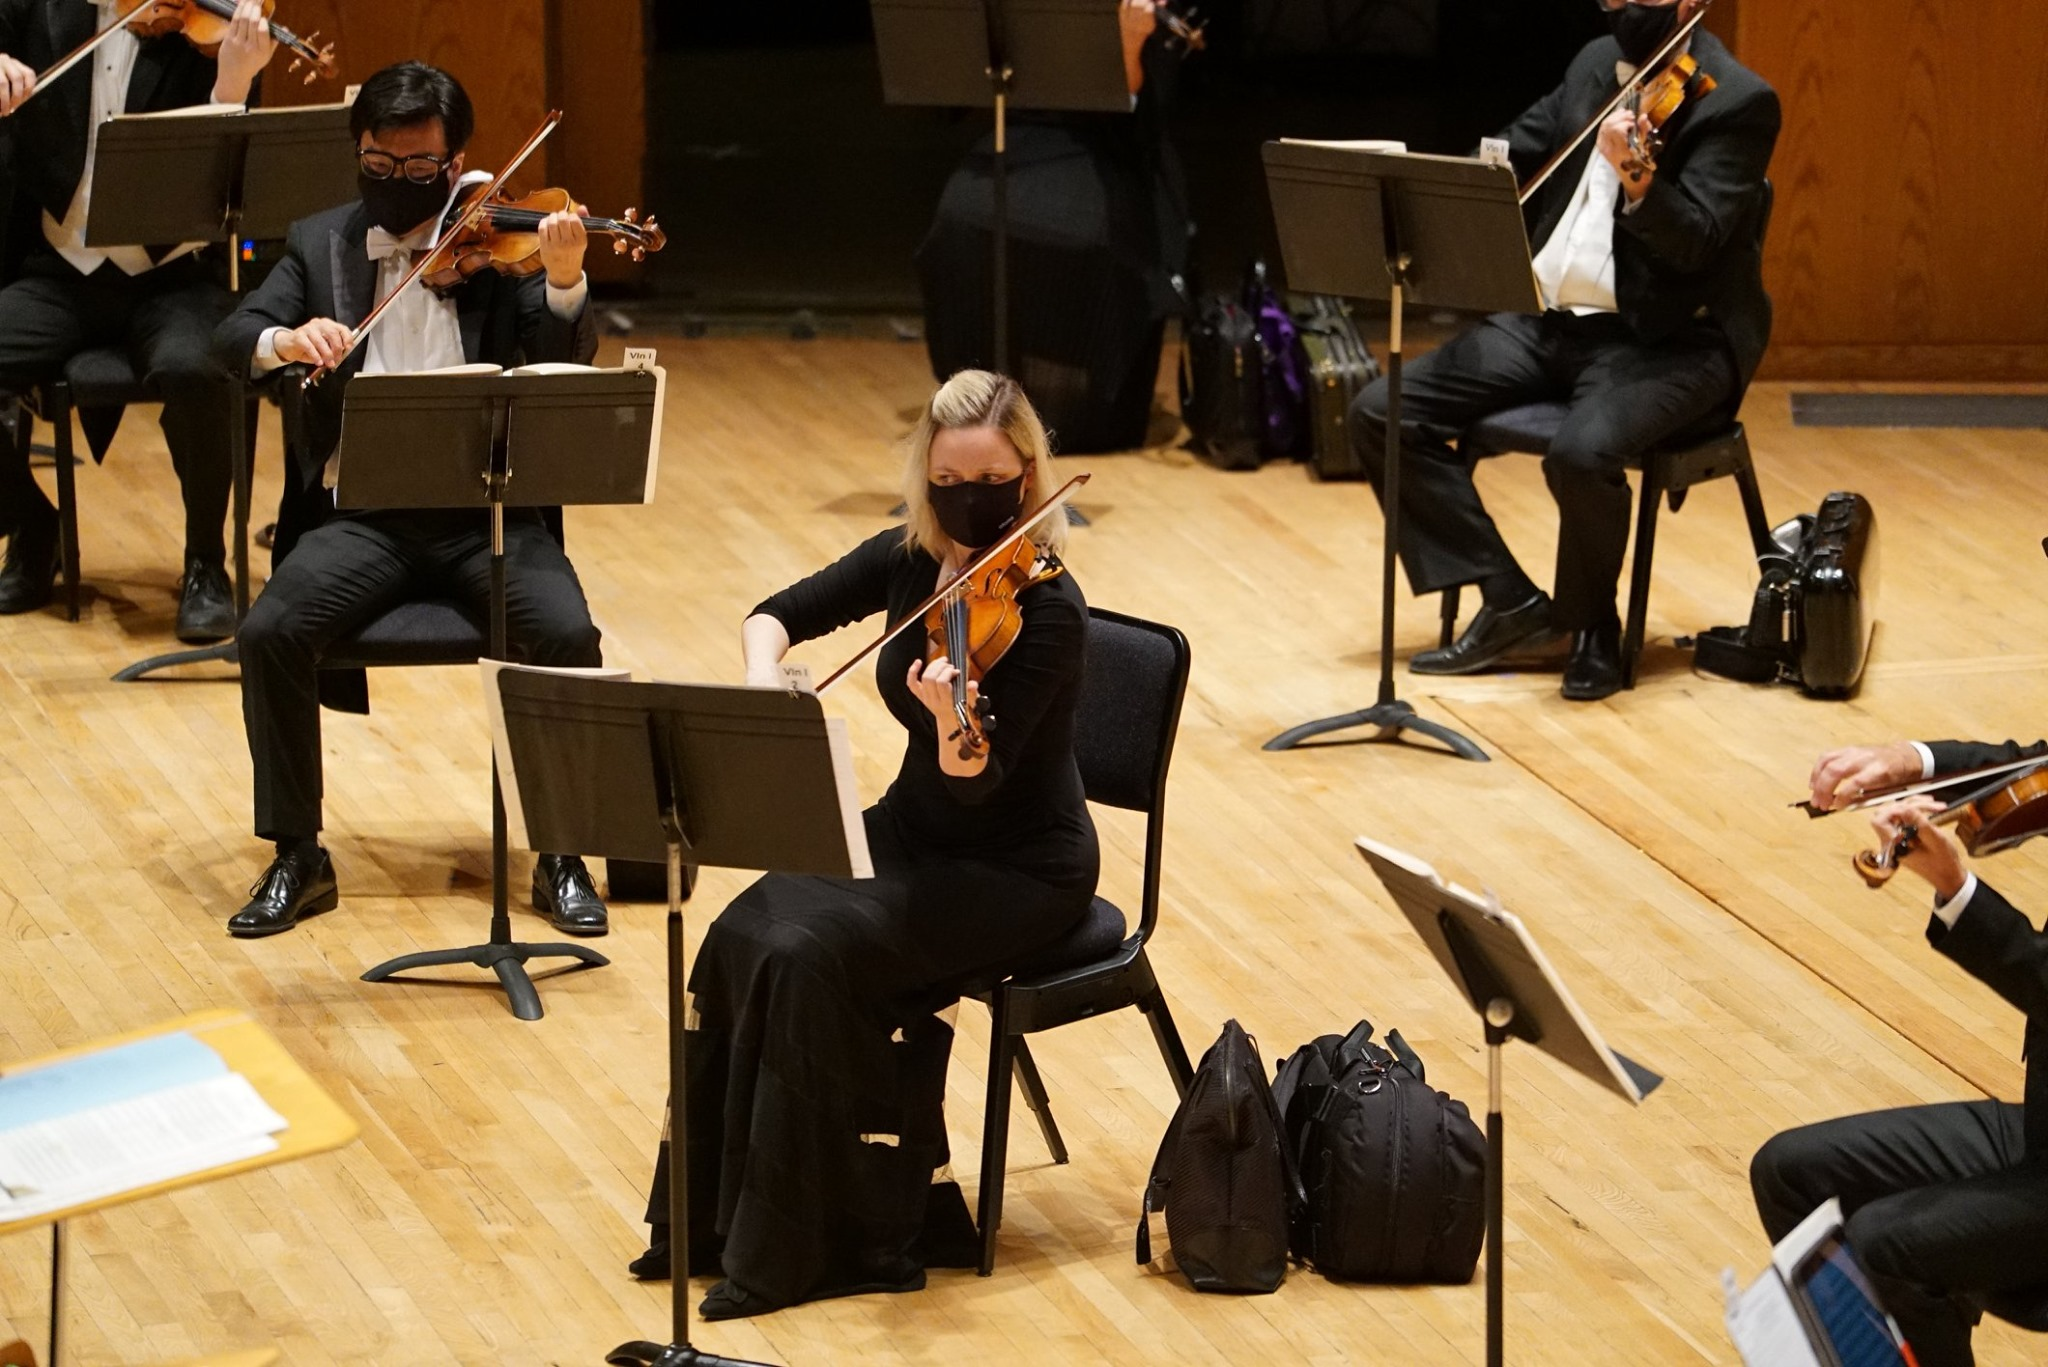 The Utah Symphony utilizes face masks and social distancing during a performance in Abravanel Hall in Salt Lake City in this 2020 handout photo.